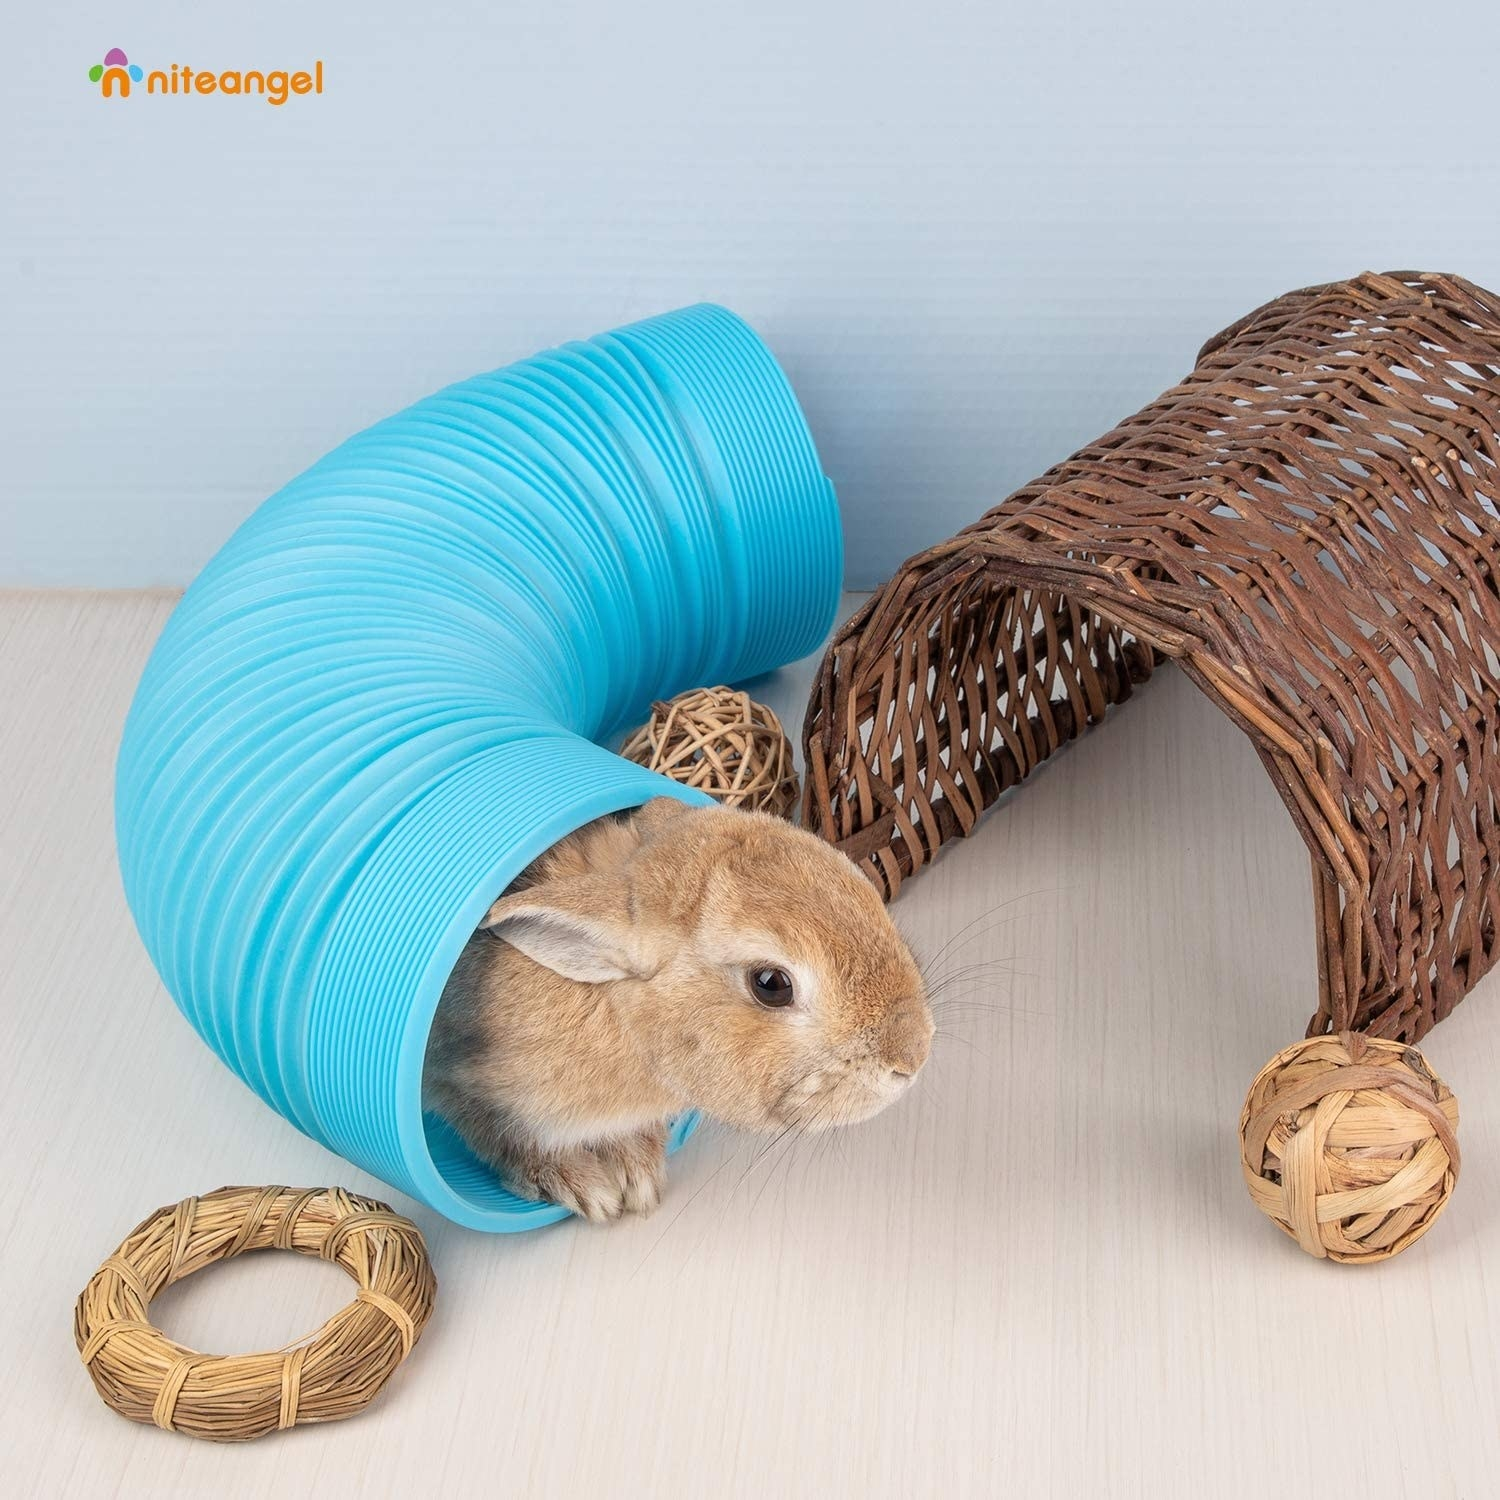 A small rabbit in the blue tube